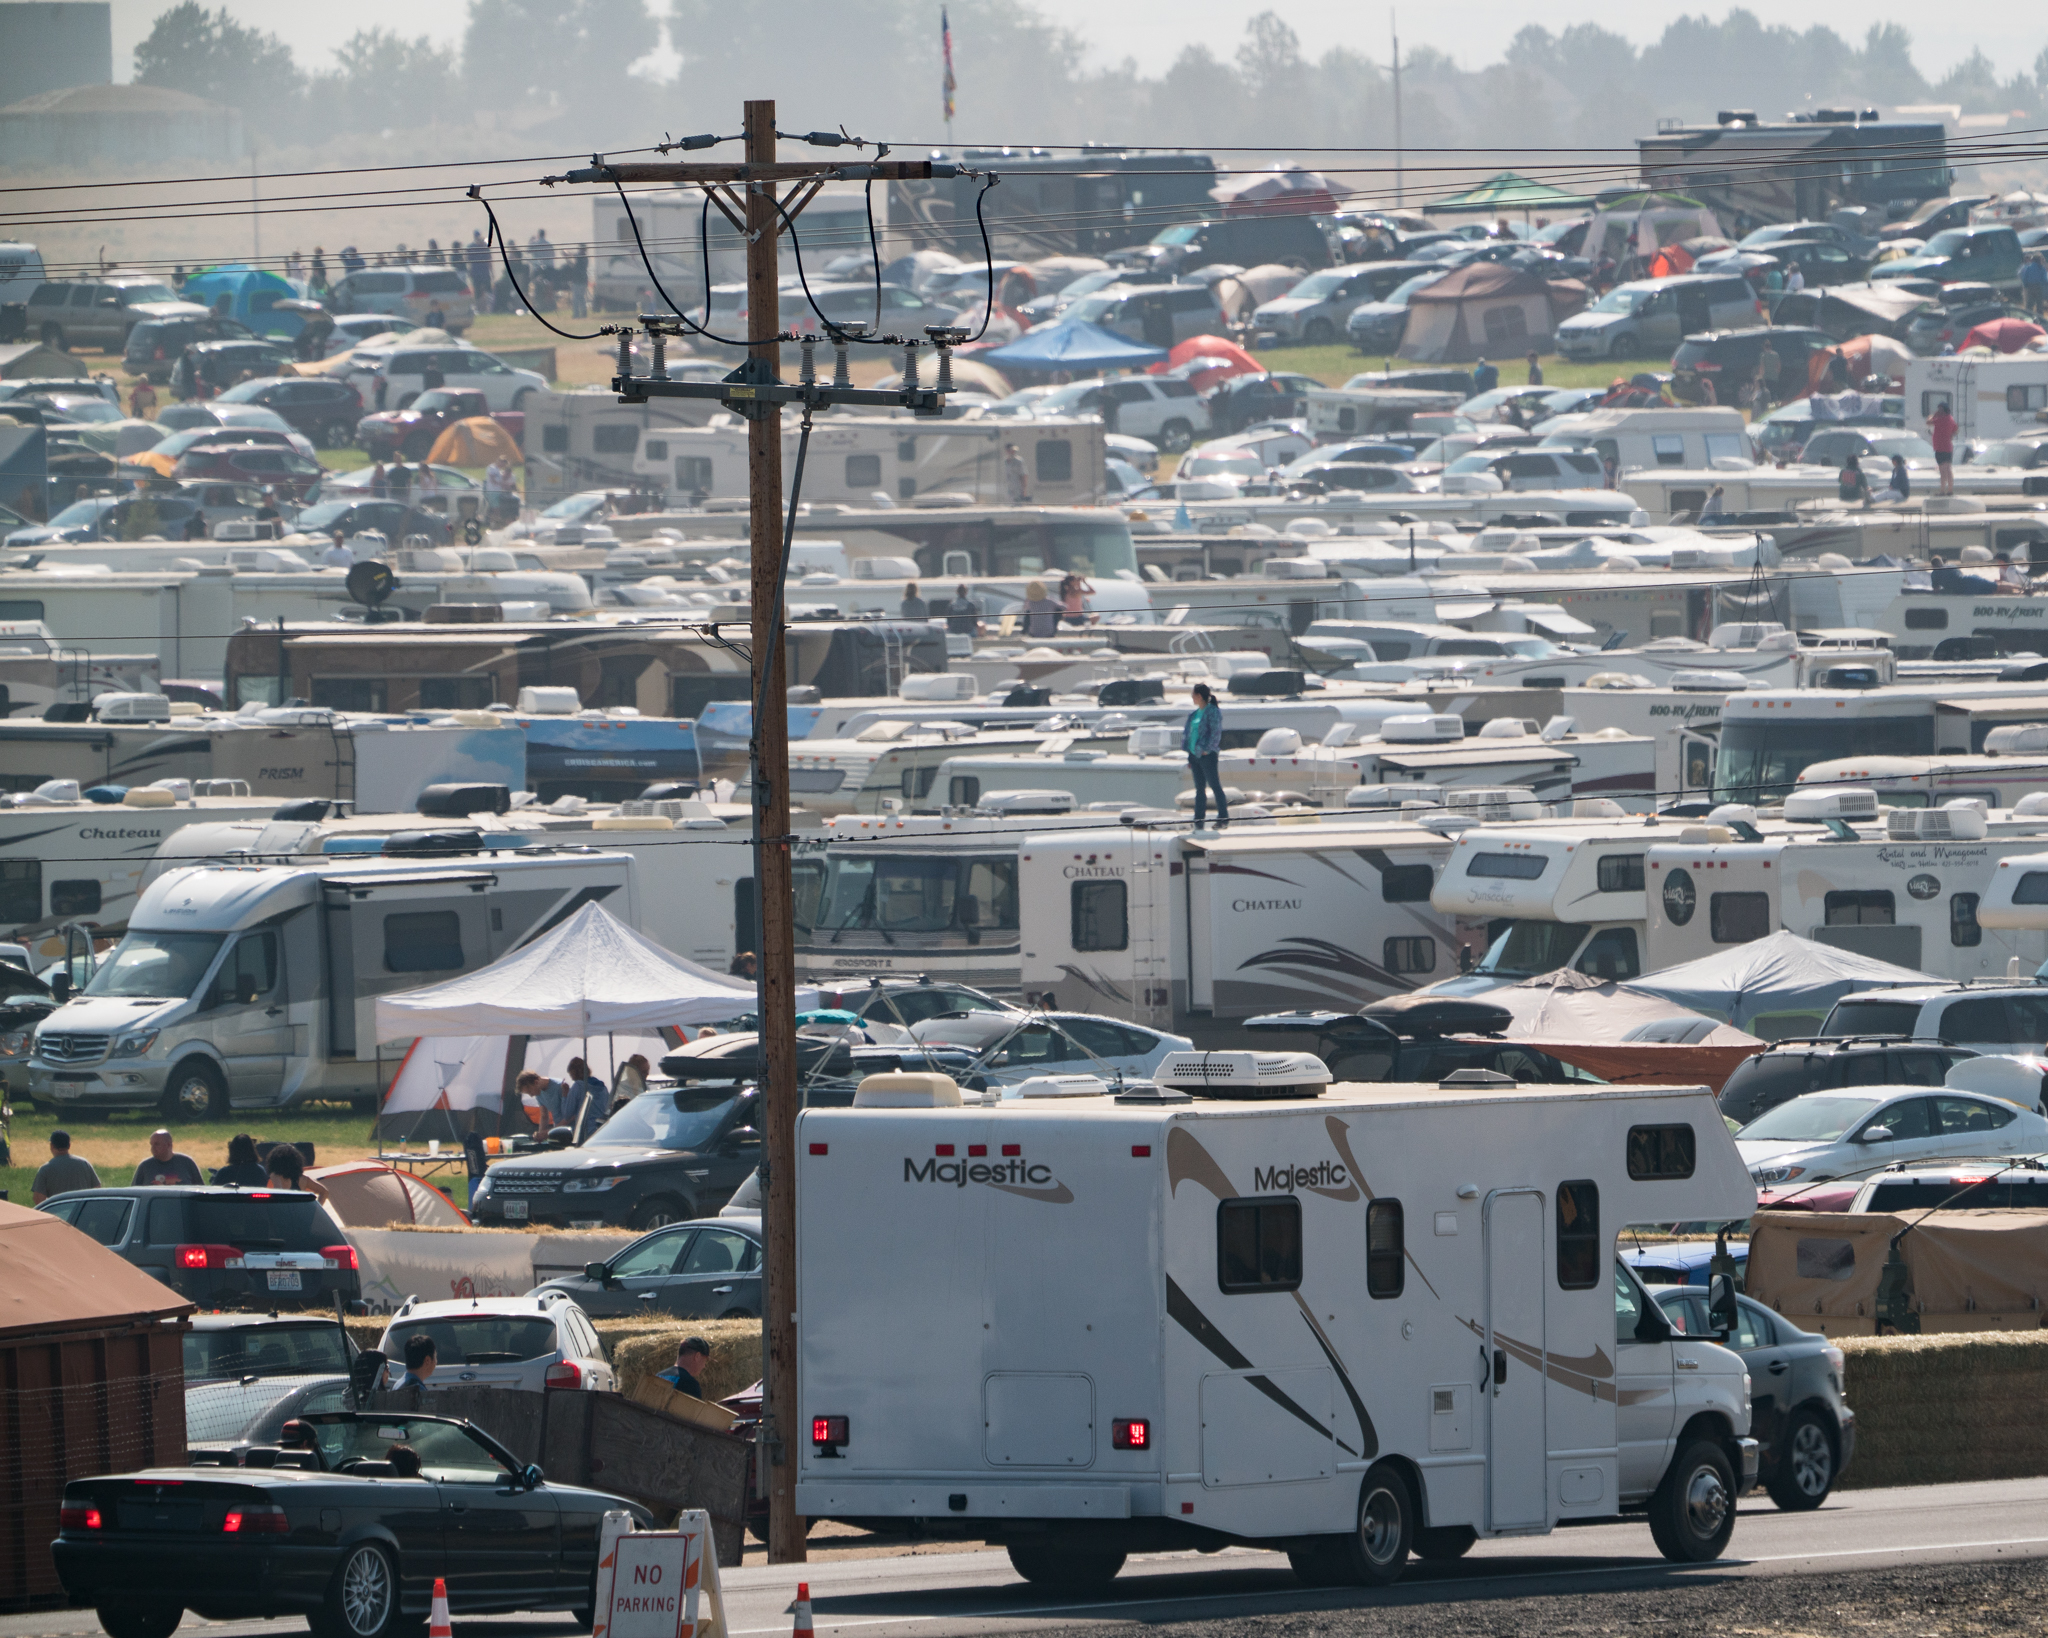 Spectators RVs and cars at the Oregon Solarfest in Madras, Oregon.